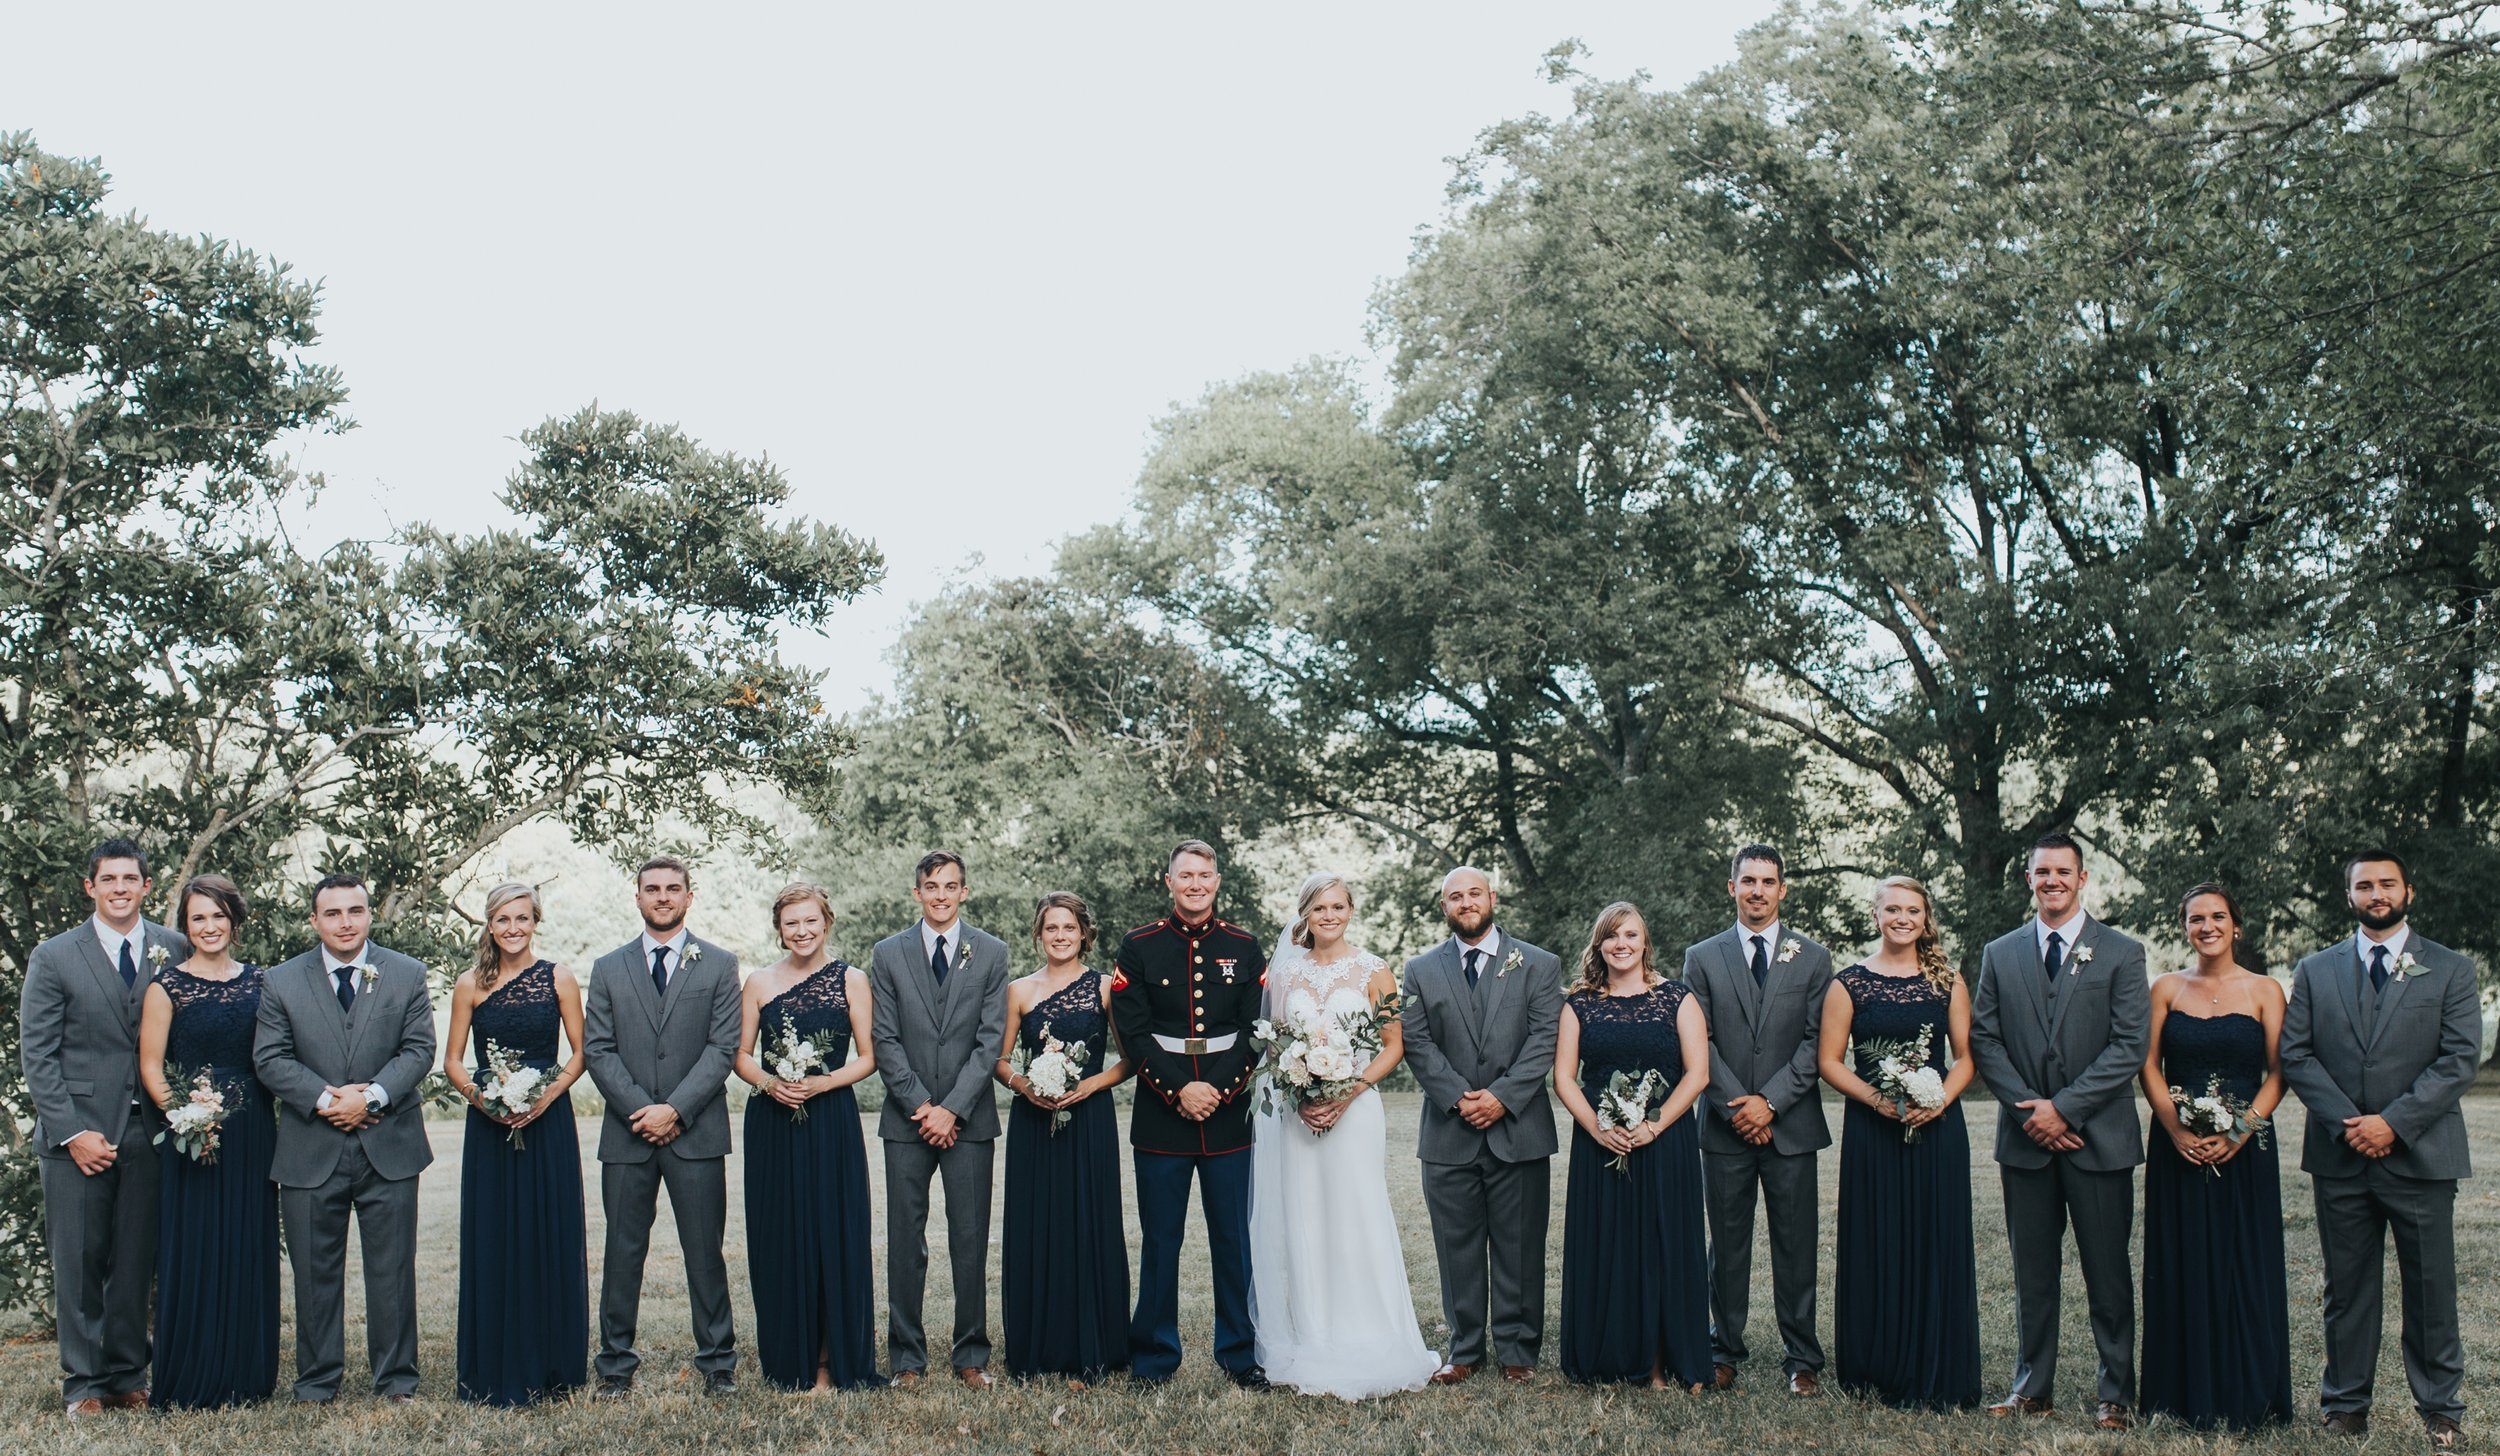 Virginia wedding photographer, Charlottesville wedding photographer, the hunt at Selma wedding, amelia virginia wedding photographer_0200.jpg